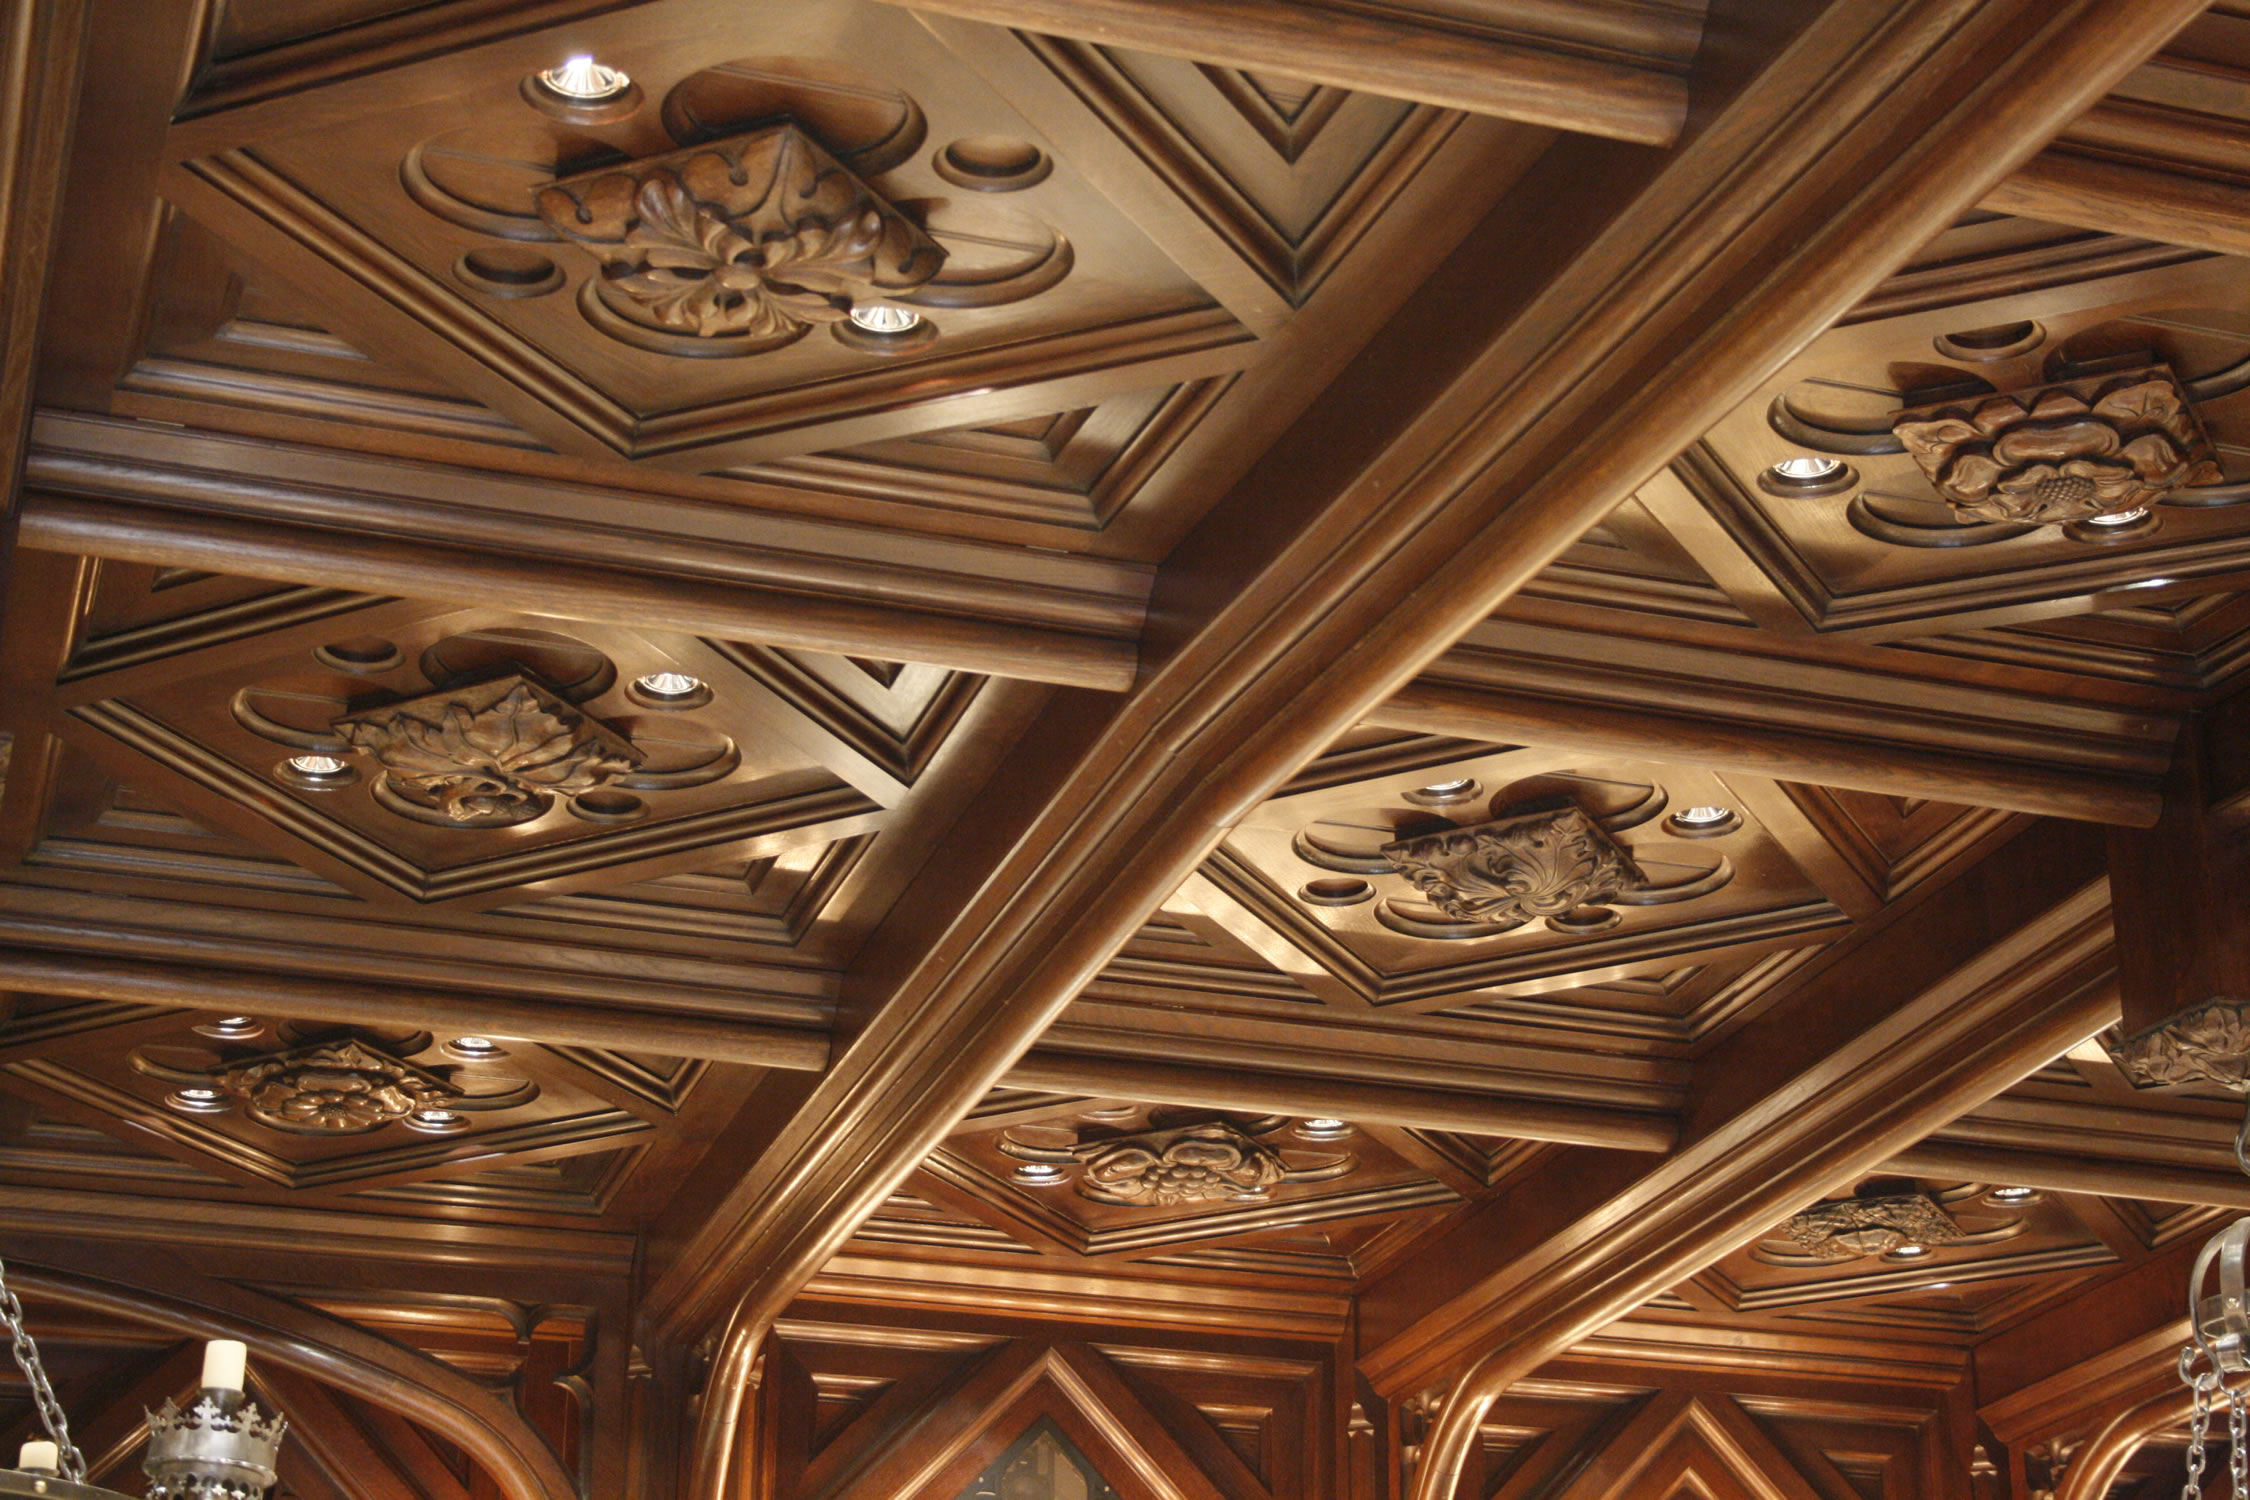 Soild oak ceiling with integrated lighting and audio equipment